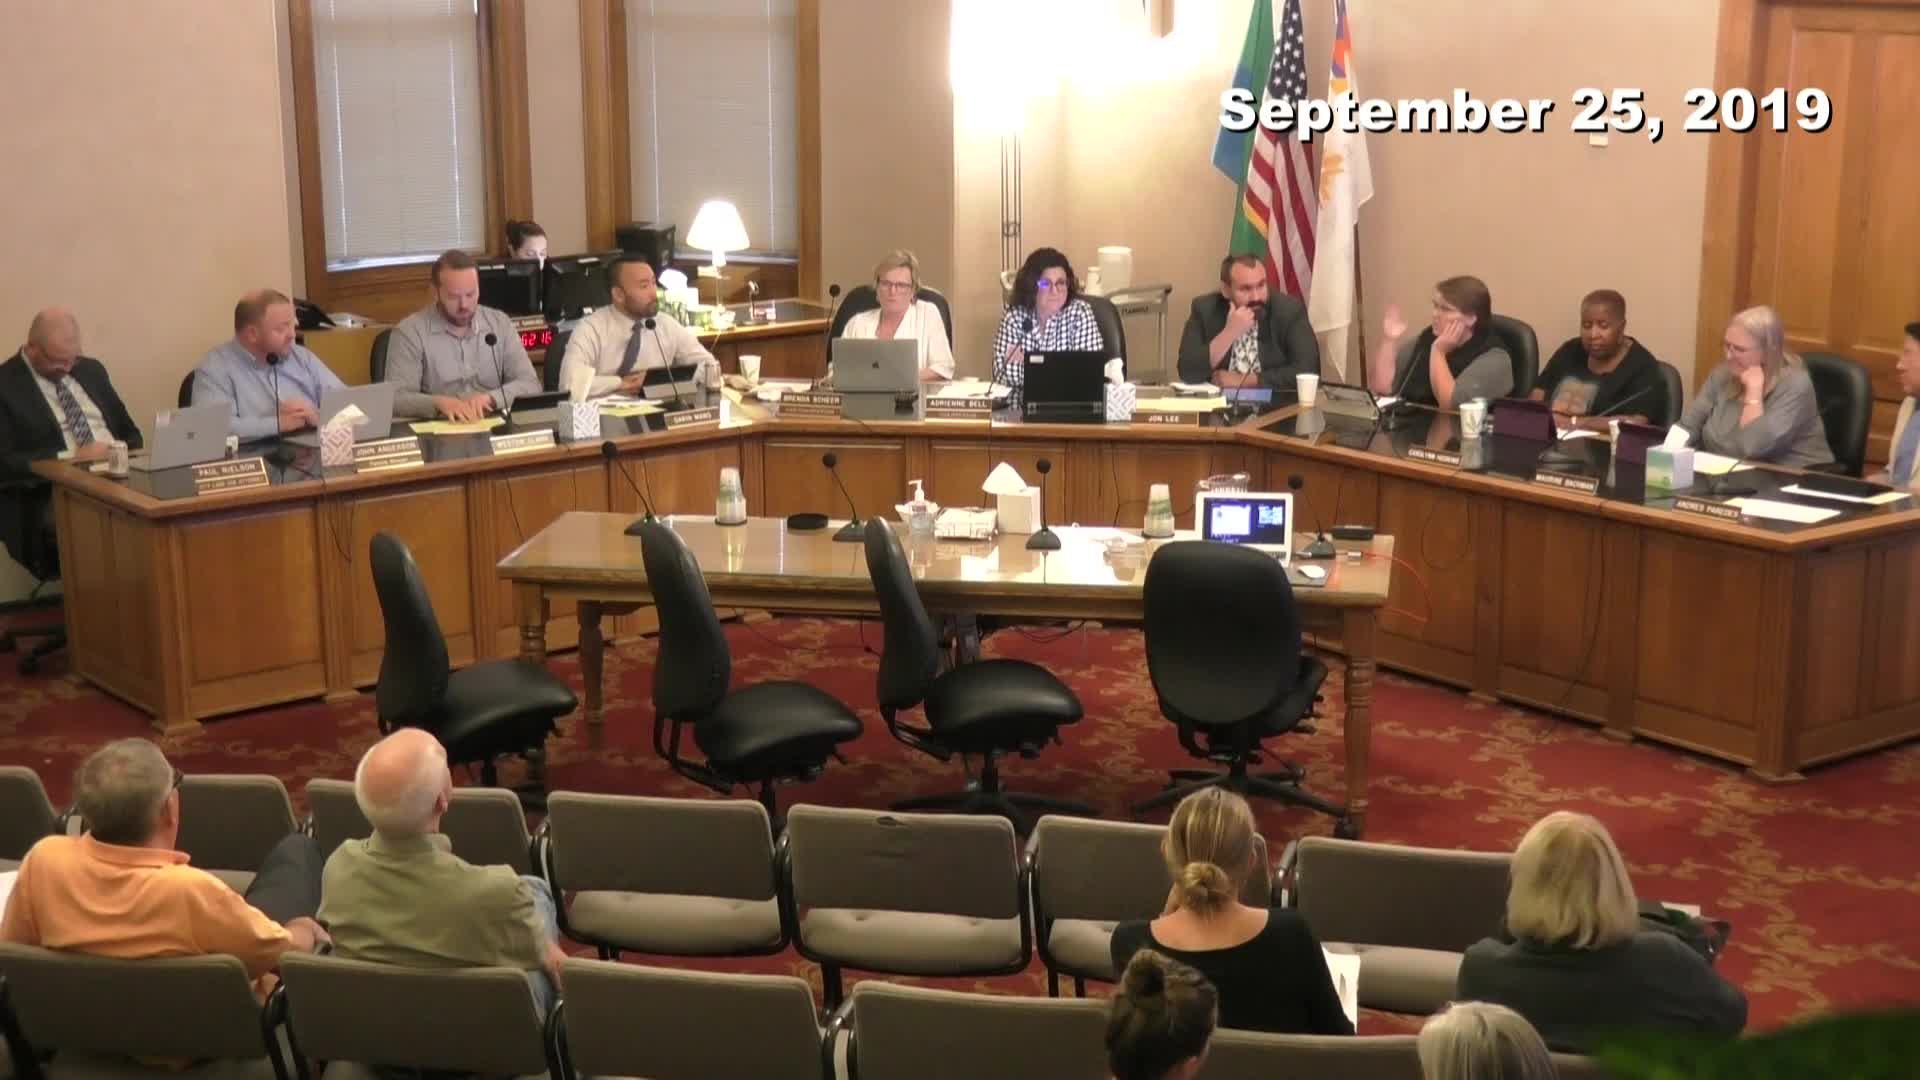 Planning Commission Meeting - 09/25/2019